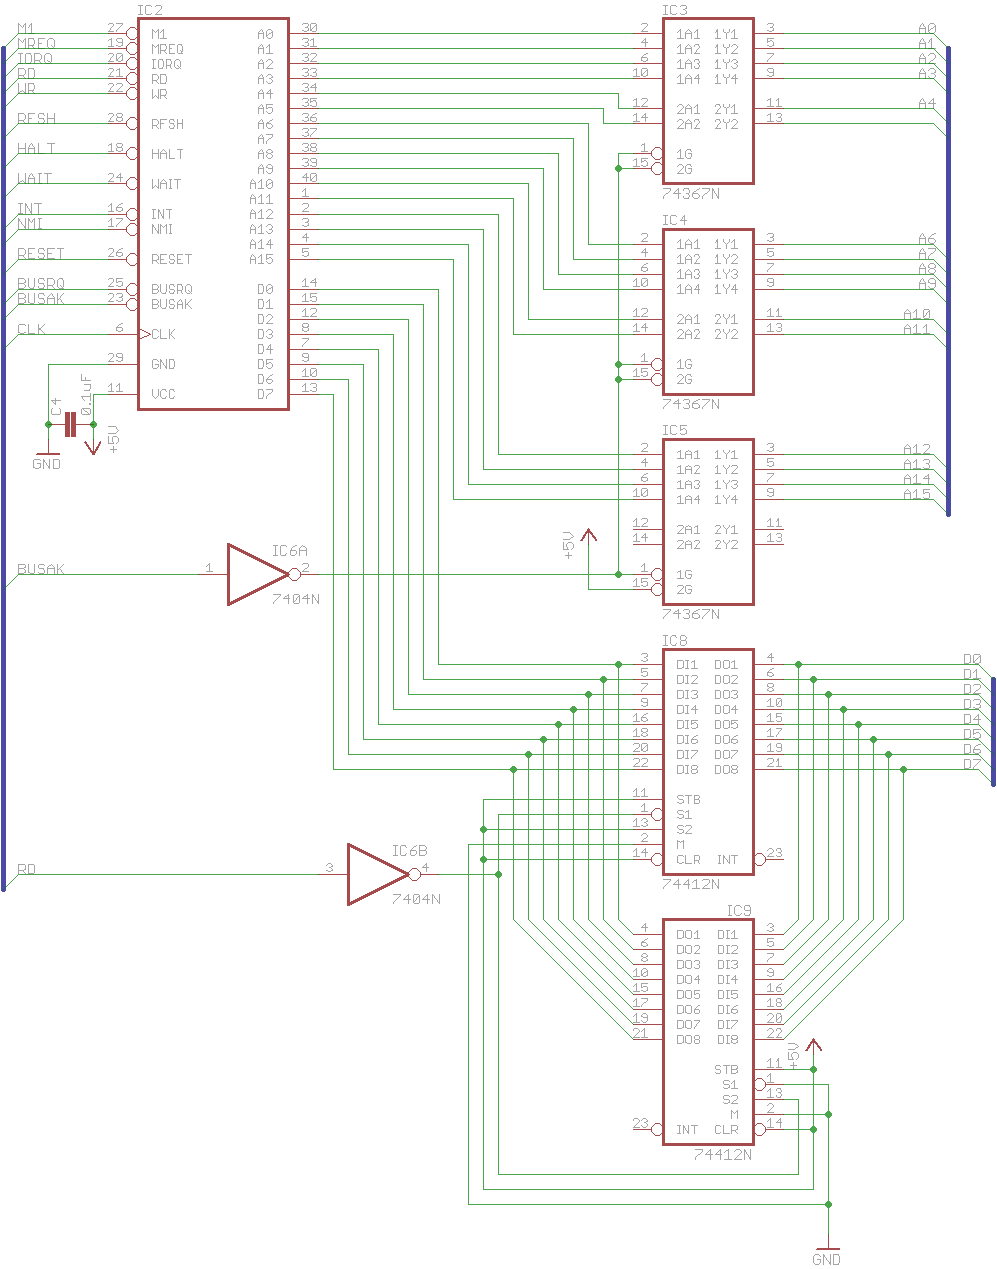 Techno Masochism Z80 Computer Bus Buffering Rev 1 Buffer Circuit Schematic Diagram Once I Got To Building The On Breadboard In Anticipation Of My Initial Led Test Started Realize That Chip Count Was Going Be Very